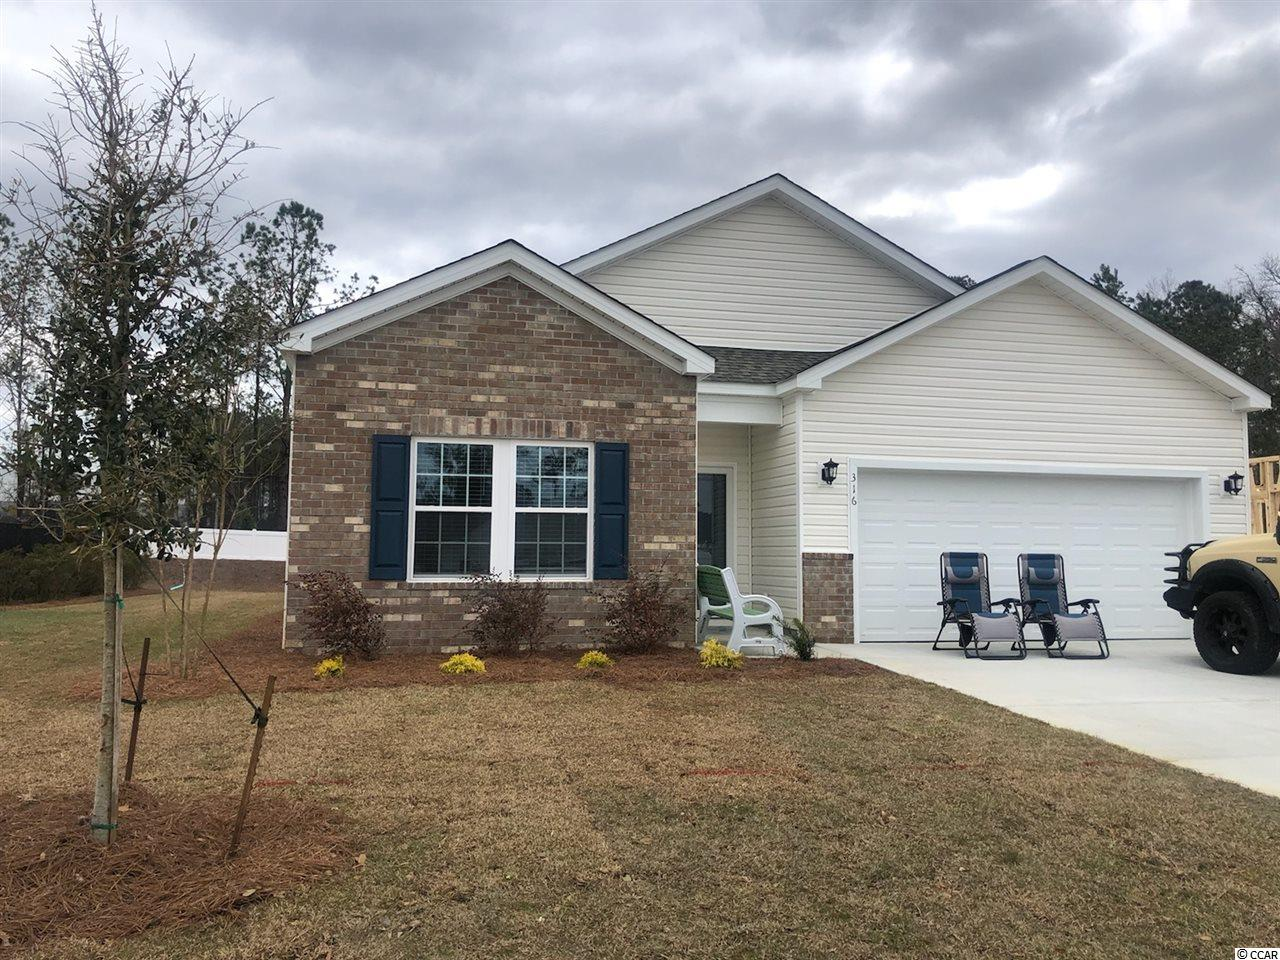 Hampton Park is a natural Gas Community located on 707 near 544. We are located minutes from beaches, shopping, golf, restaurants, medical facilities and more. This is a small 80 home community that will feature lots that view the pond, as well as backyards that have wooded views.  This 4 bedroom home features vinyl plank flooring, white painted cabinets, granite countertops, and a large screened porch with a great view of the pond!   *Photos are of model home and do not reflect color selections and options of actual unit for sale.*